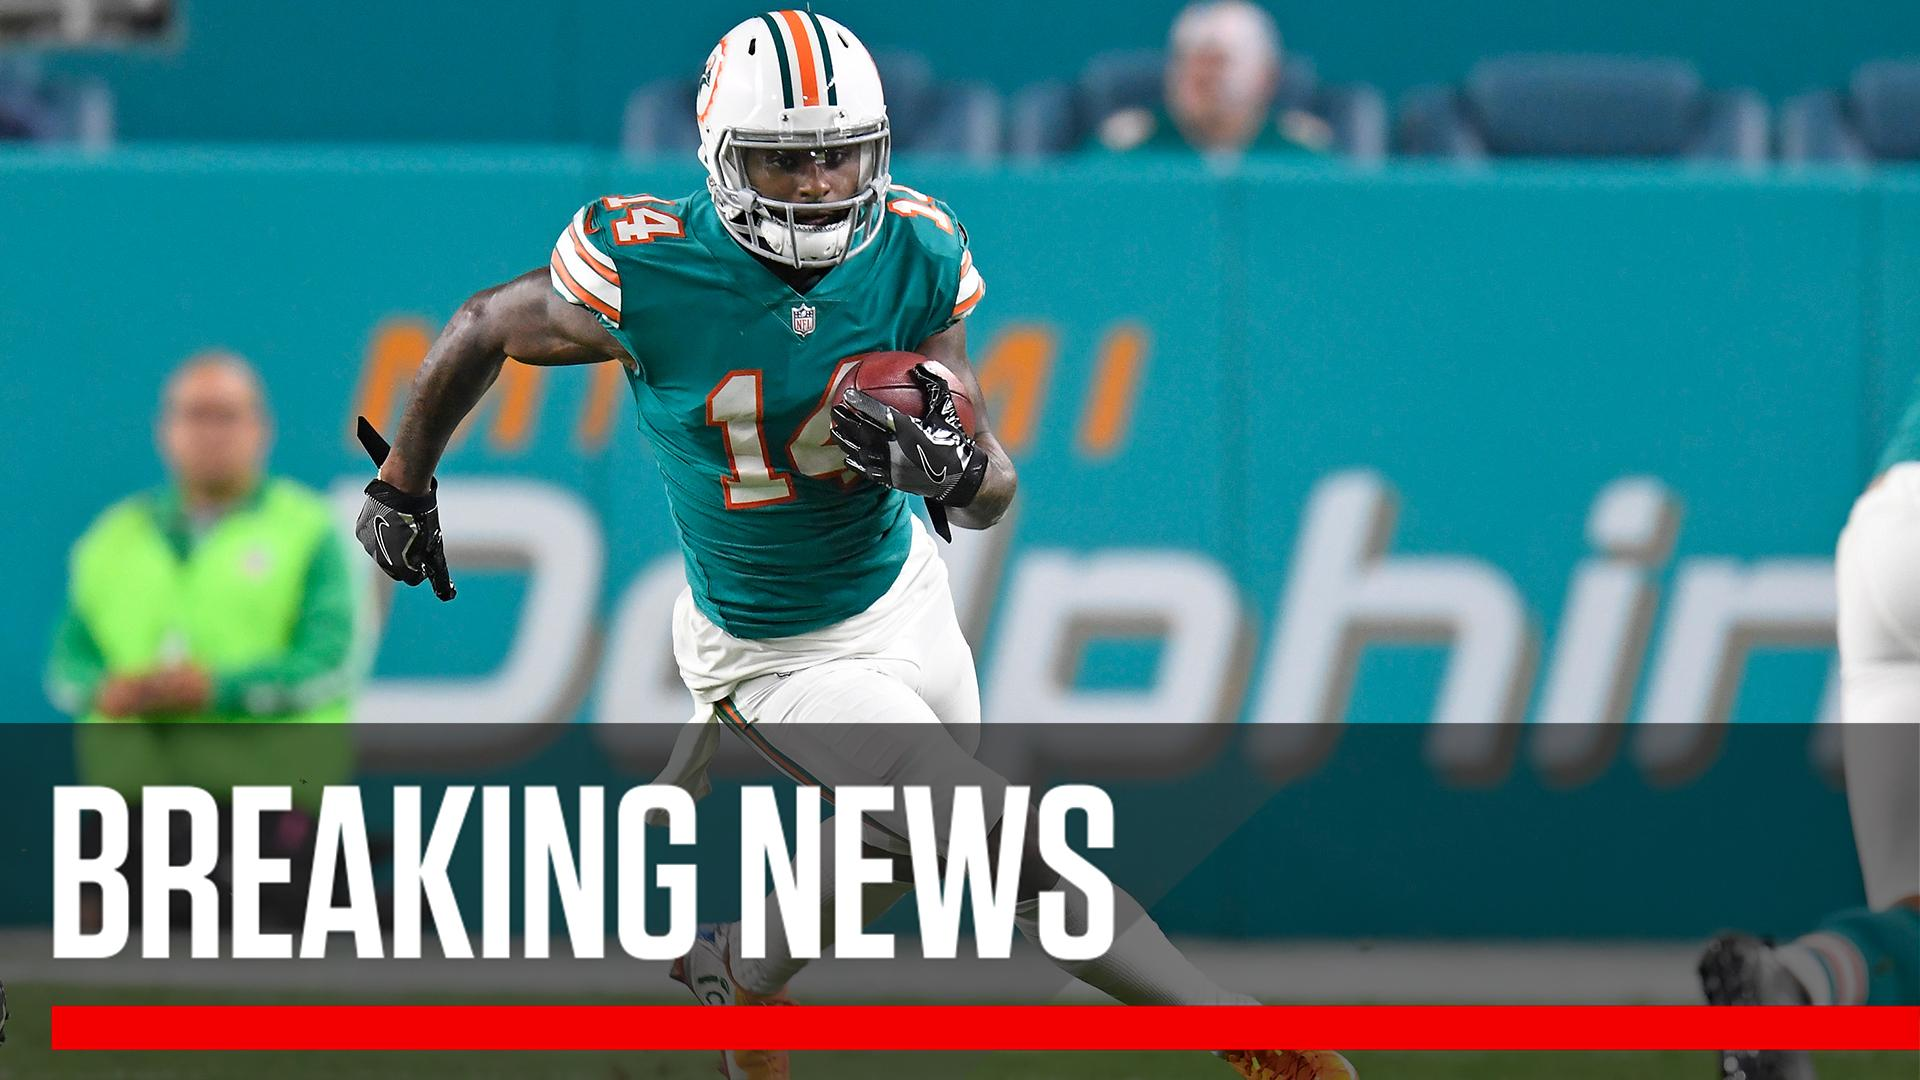 Breaking: The Miami Dolphins have placed a franchise tag on Jarvis Landry. https://t.co/Quoryvu5Ob